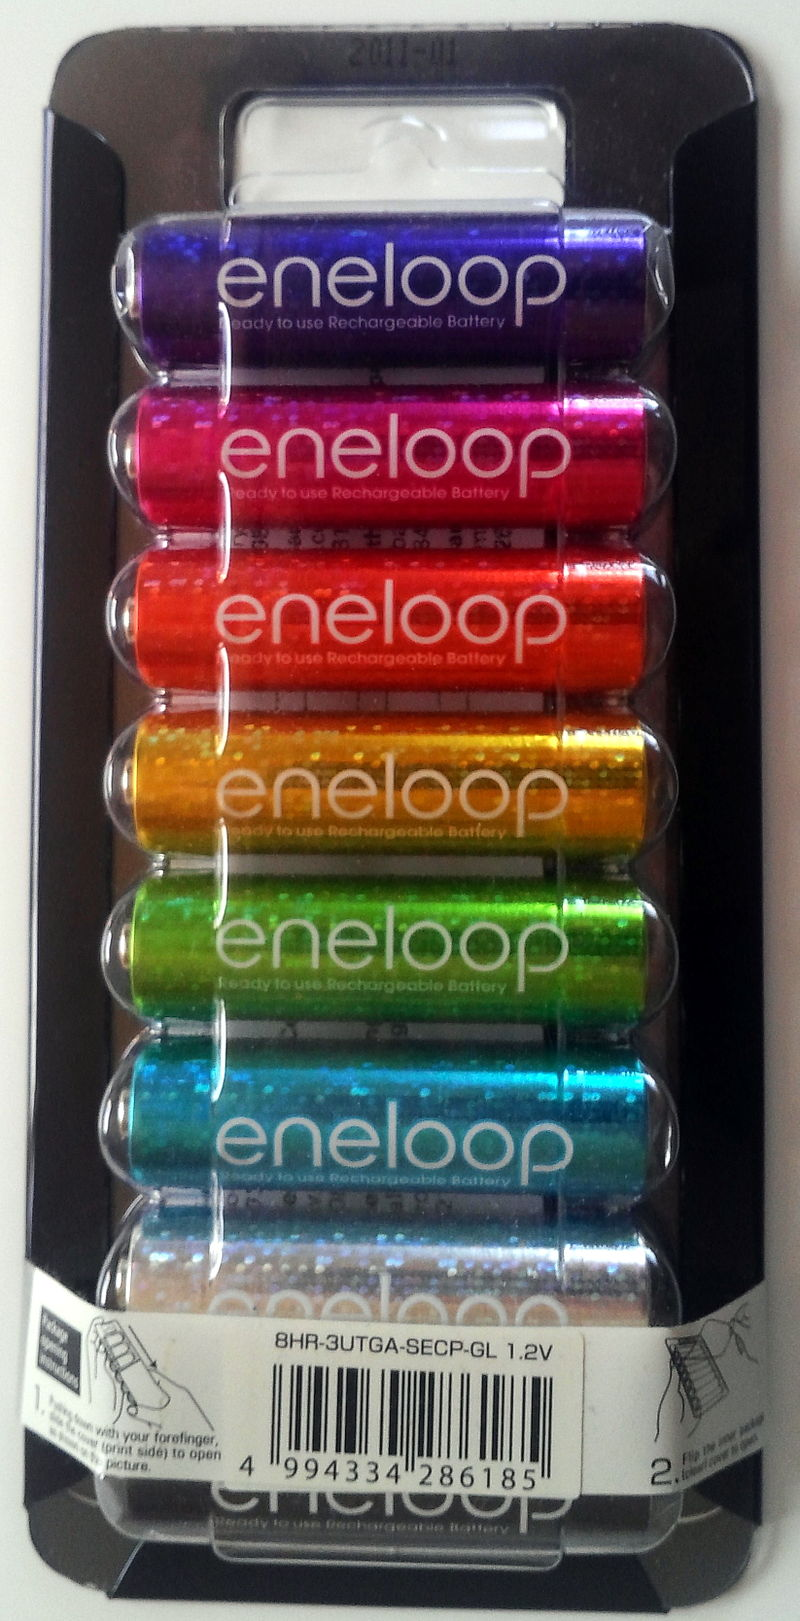 https://upload.wikimedia.org/wikipedia/commons/thumb/8/87/Eneloop_5th_anniversary_special_glitter_edition_pack_front.jpg/800px-Eneloop_5th_anniversary_special_glitter_edition_pack_front.jpg